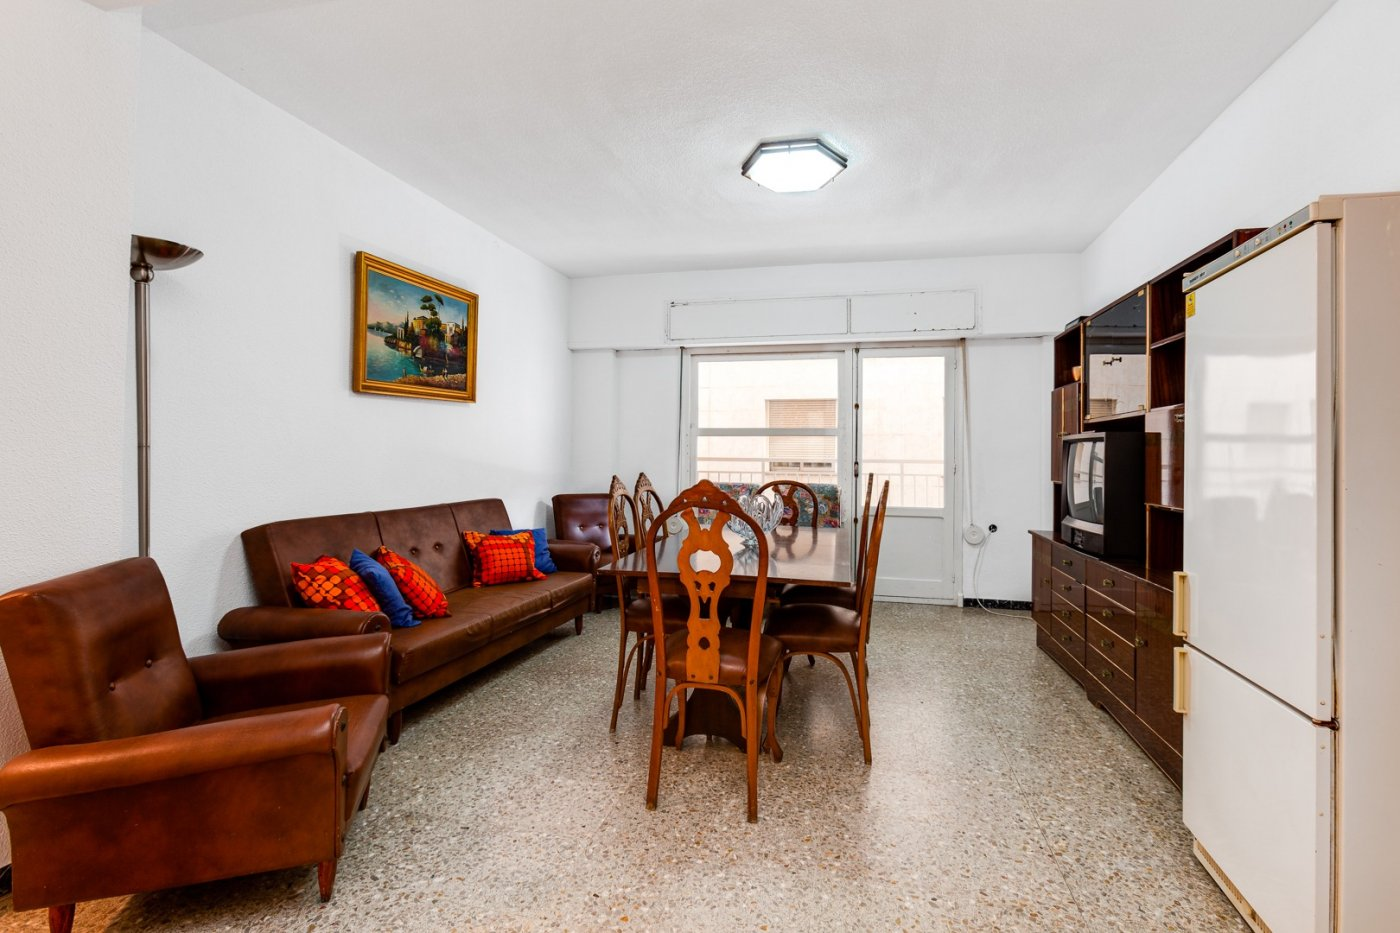 3 BEDROOM APARTMENT 100 METERS FROM PLAYA DEL CURA IN TORREVIEJA